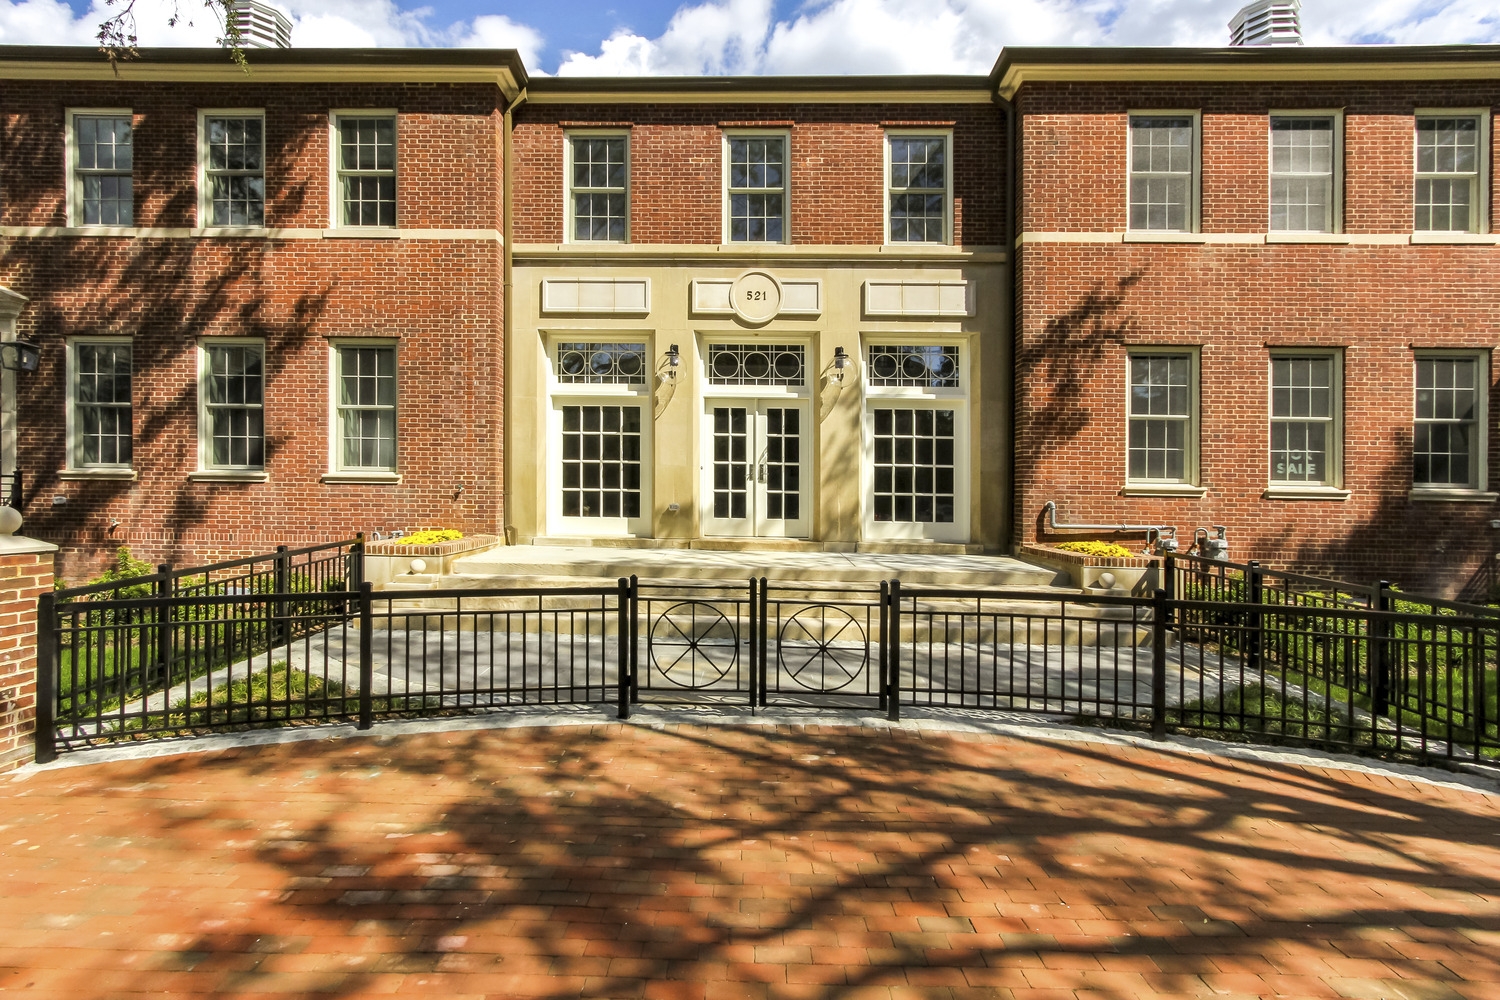 CBG builds Brightleaf & Cooper, a 16 Historically-Restored Luxury LEED® Townhomes in Alexandria, VA - Image #1